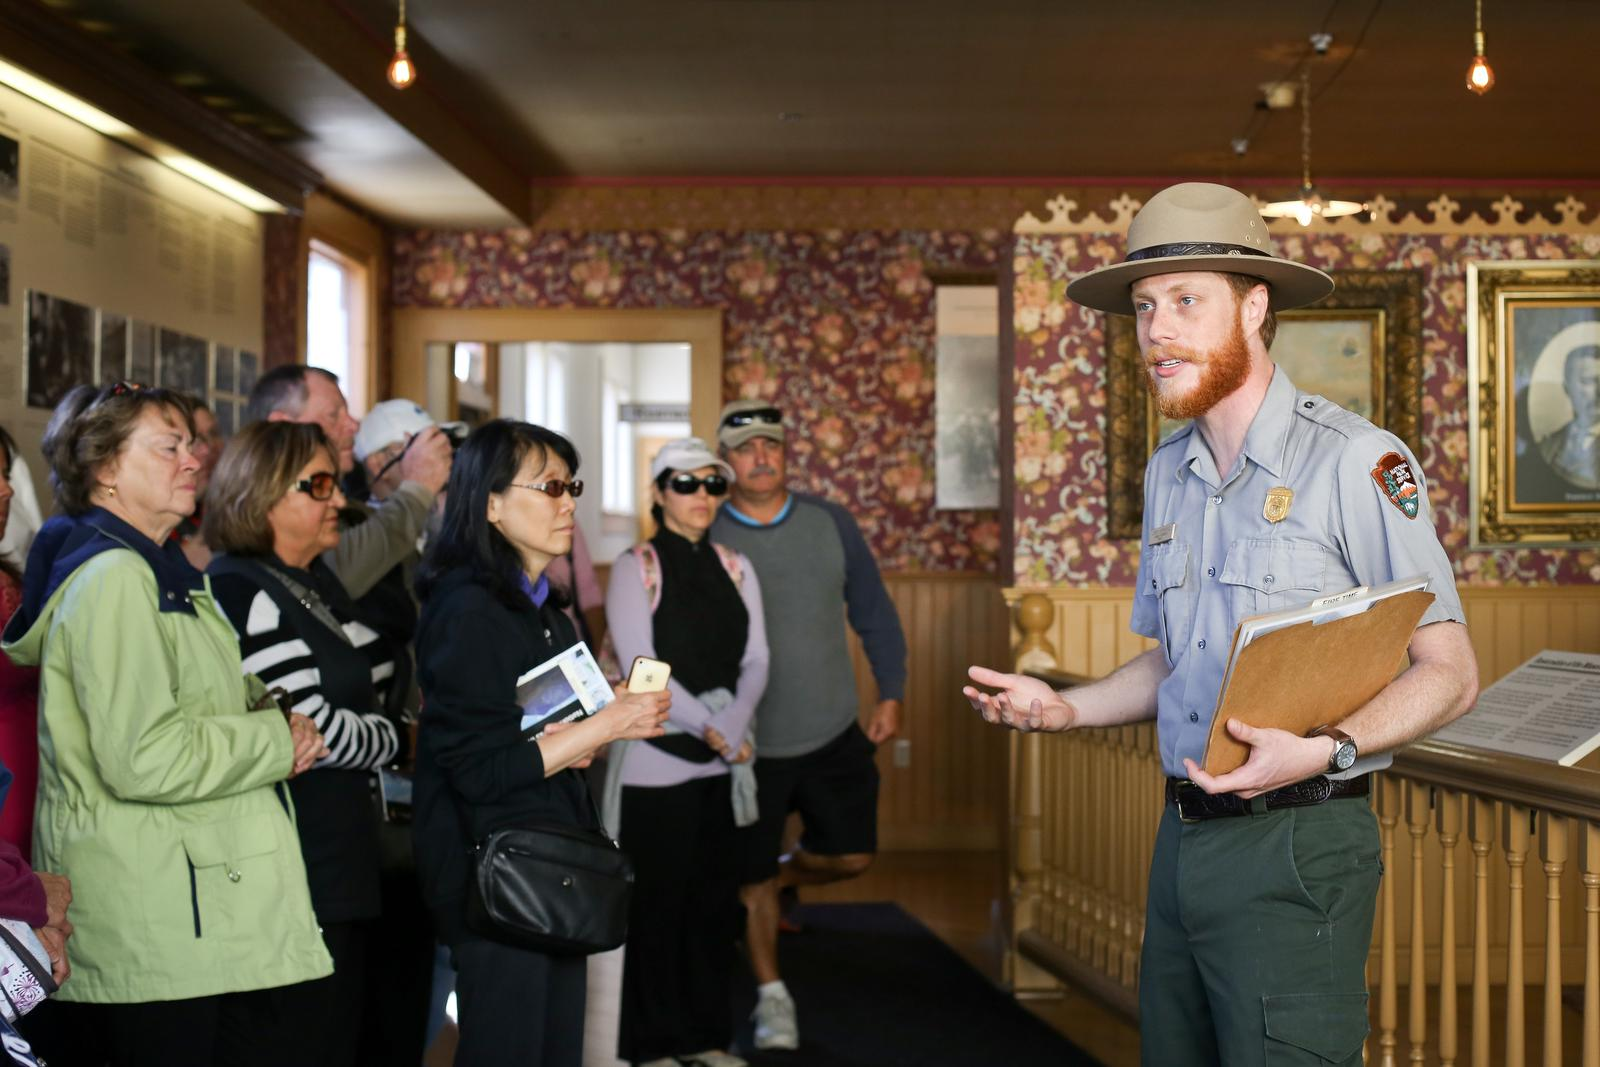 Inside a turn of the century saloon museum, a ranger talks to a group of visitors.Rangers bring the gold rush to life on walking tours through Skagway's Historic District.